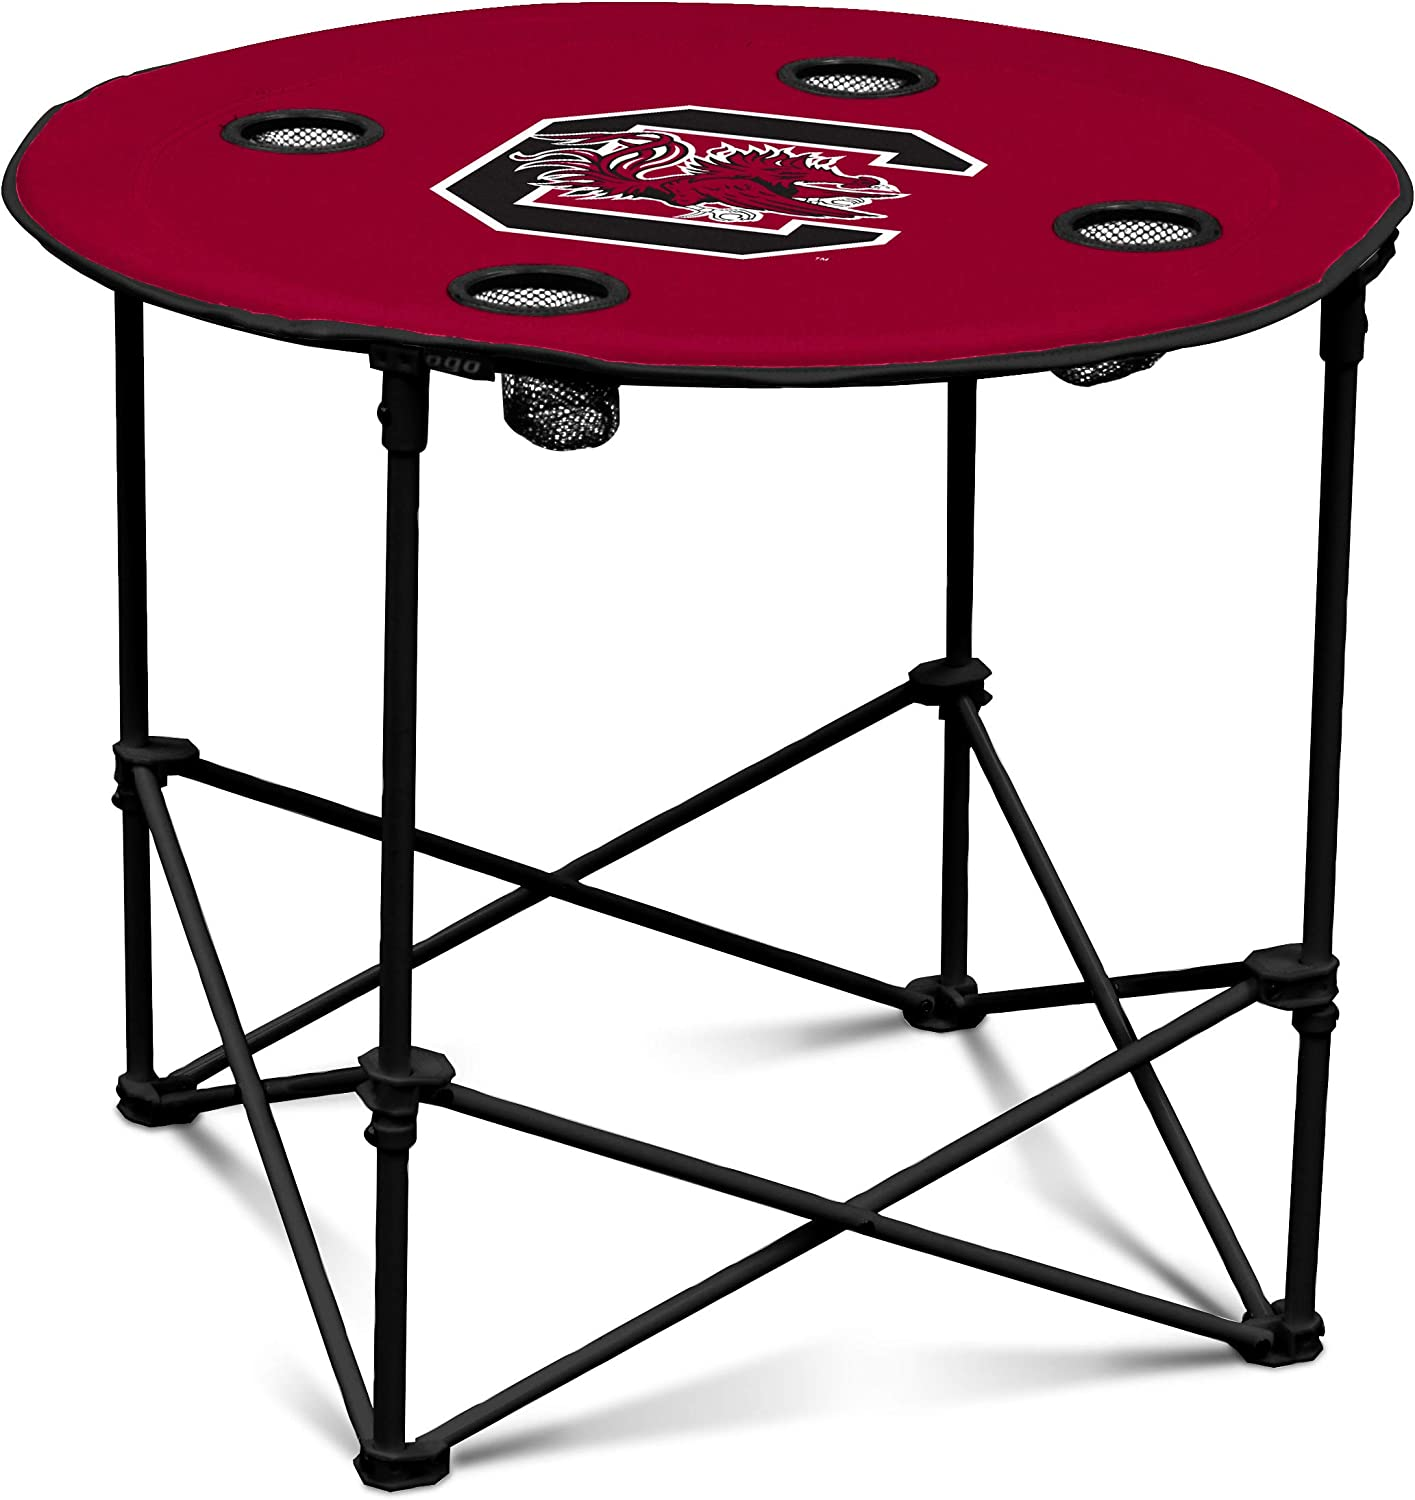 South Carolina Gamecocks Collapsible Round Table with 4 Cup Holders and Carry Bag